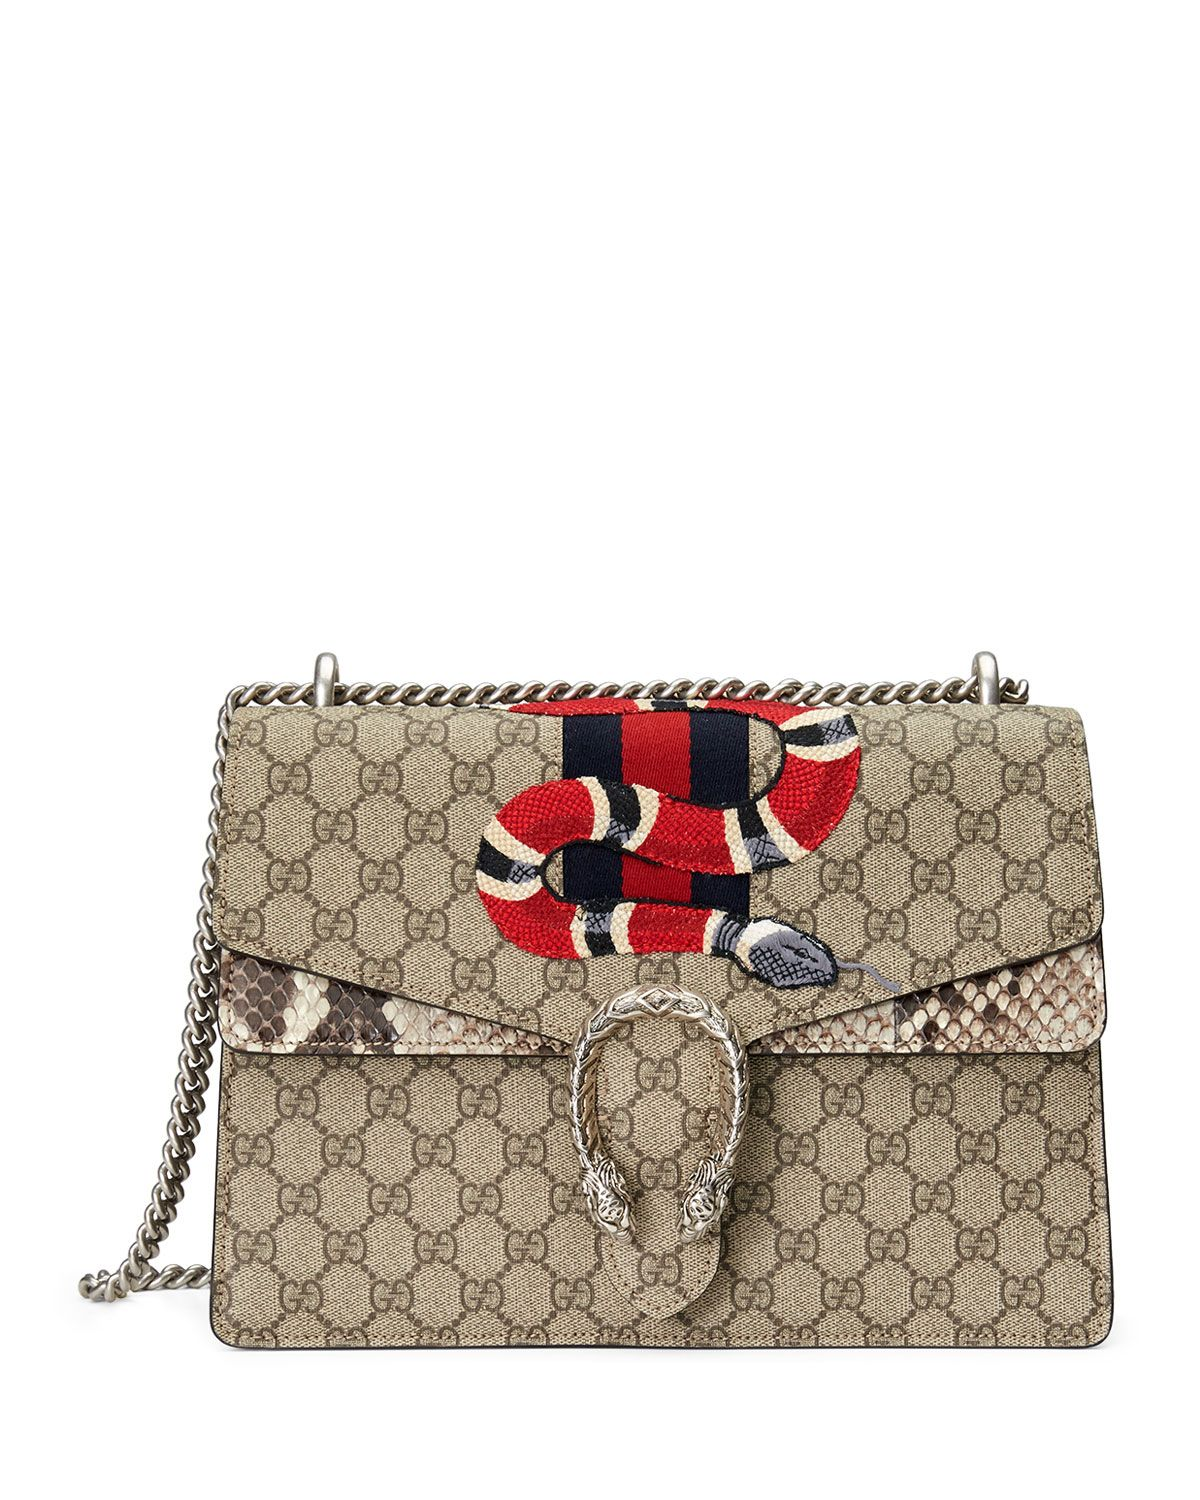 c48235d19621 Dionysus Snake-Embroidered Crossbody Bag Multi | *Handbags, Wallets ...